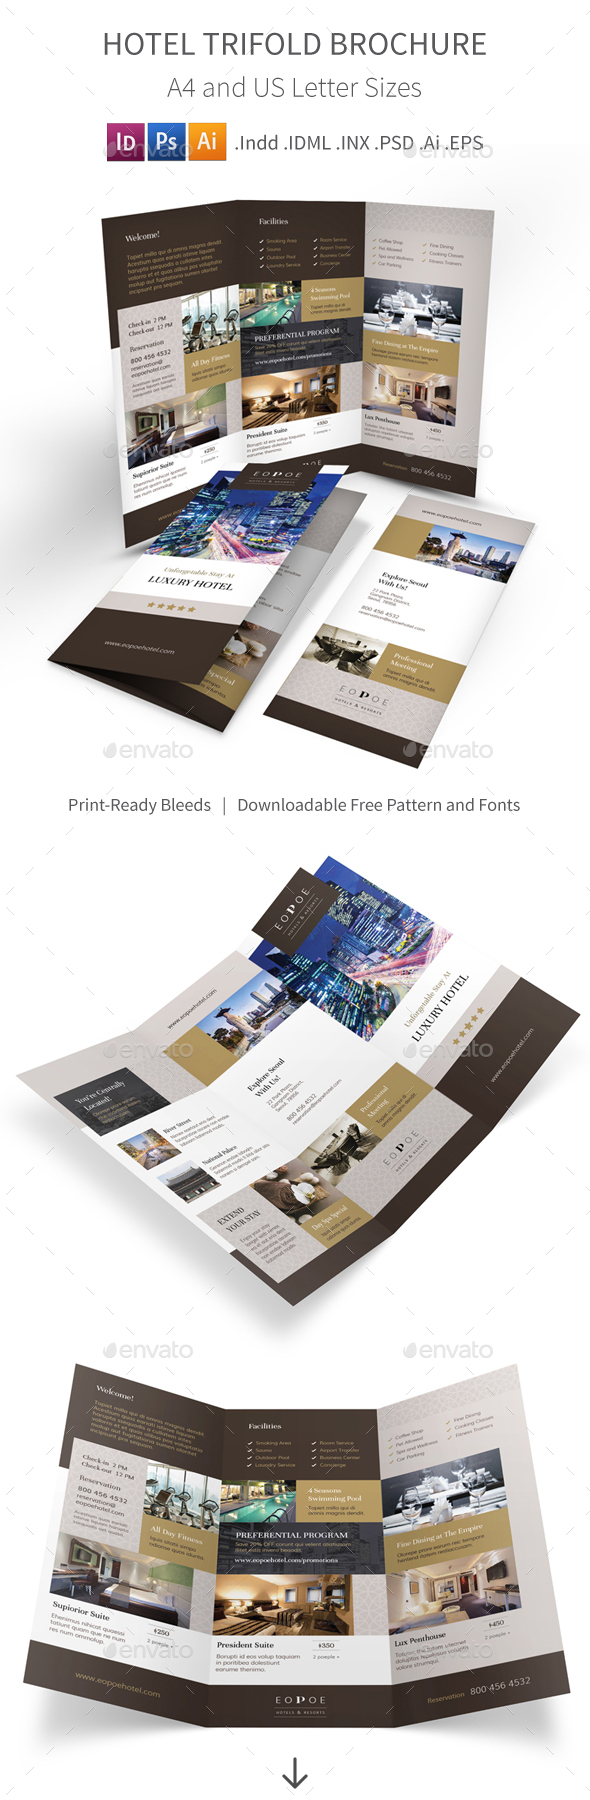 Luxury Hotel Brochure Graphics Designs Templates Page 2